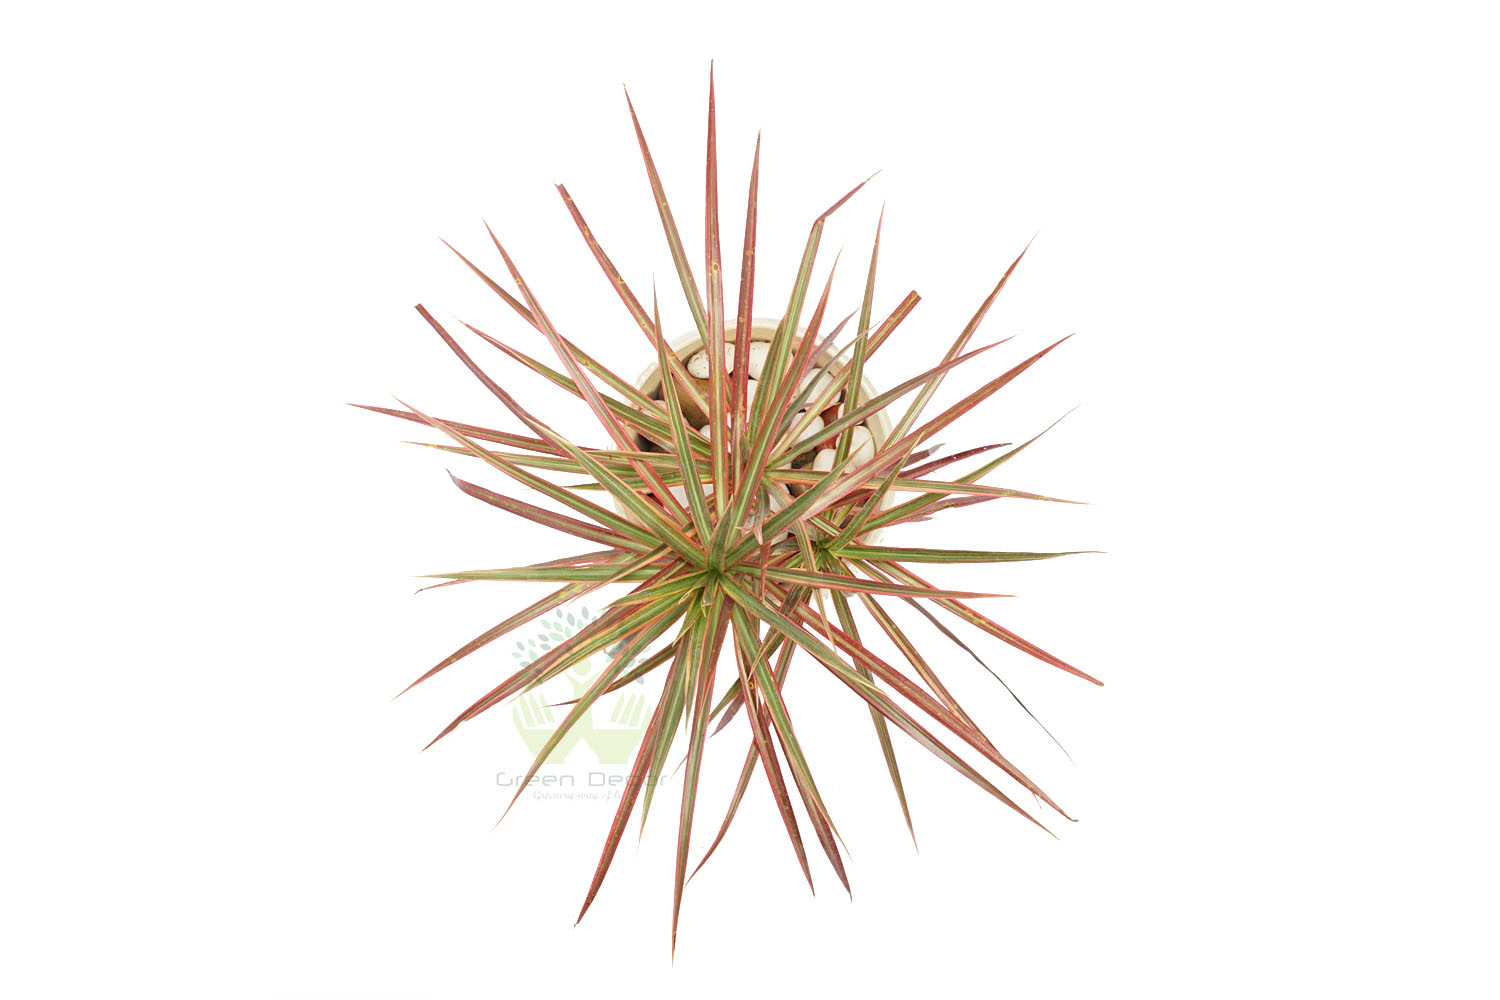 Buy Dracaena Marginata Tricolor Plant Top View, White Pots and Seeds in Delhi NCR by the best online nursery shop Greendecor.